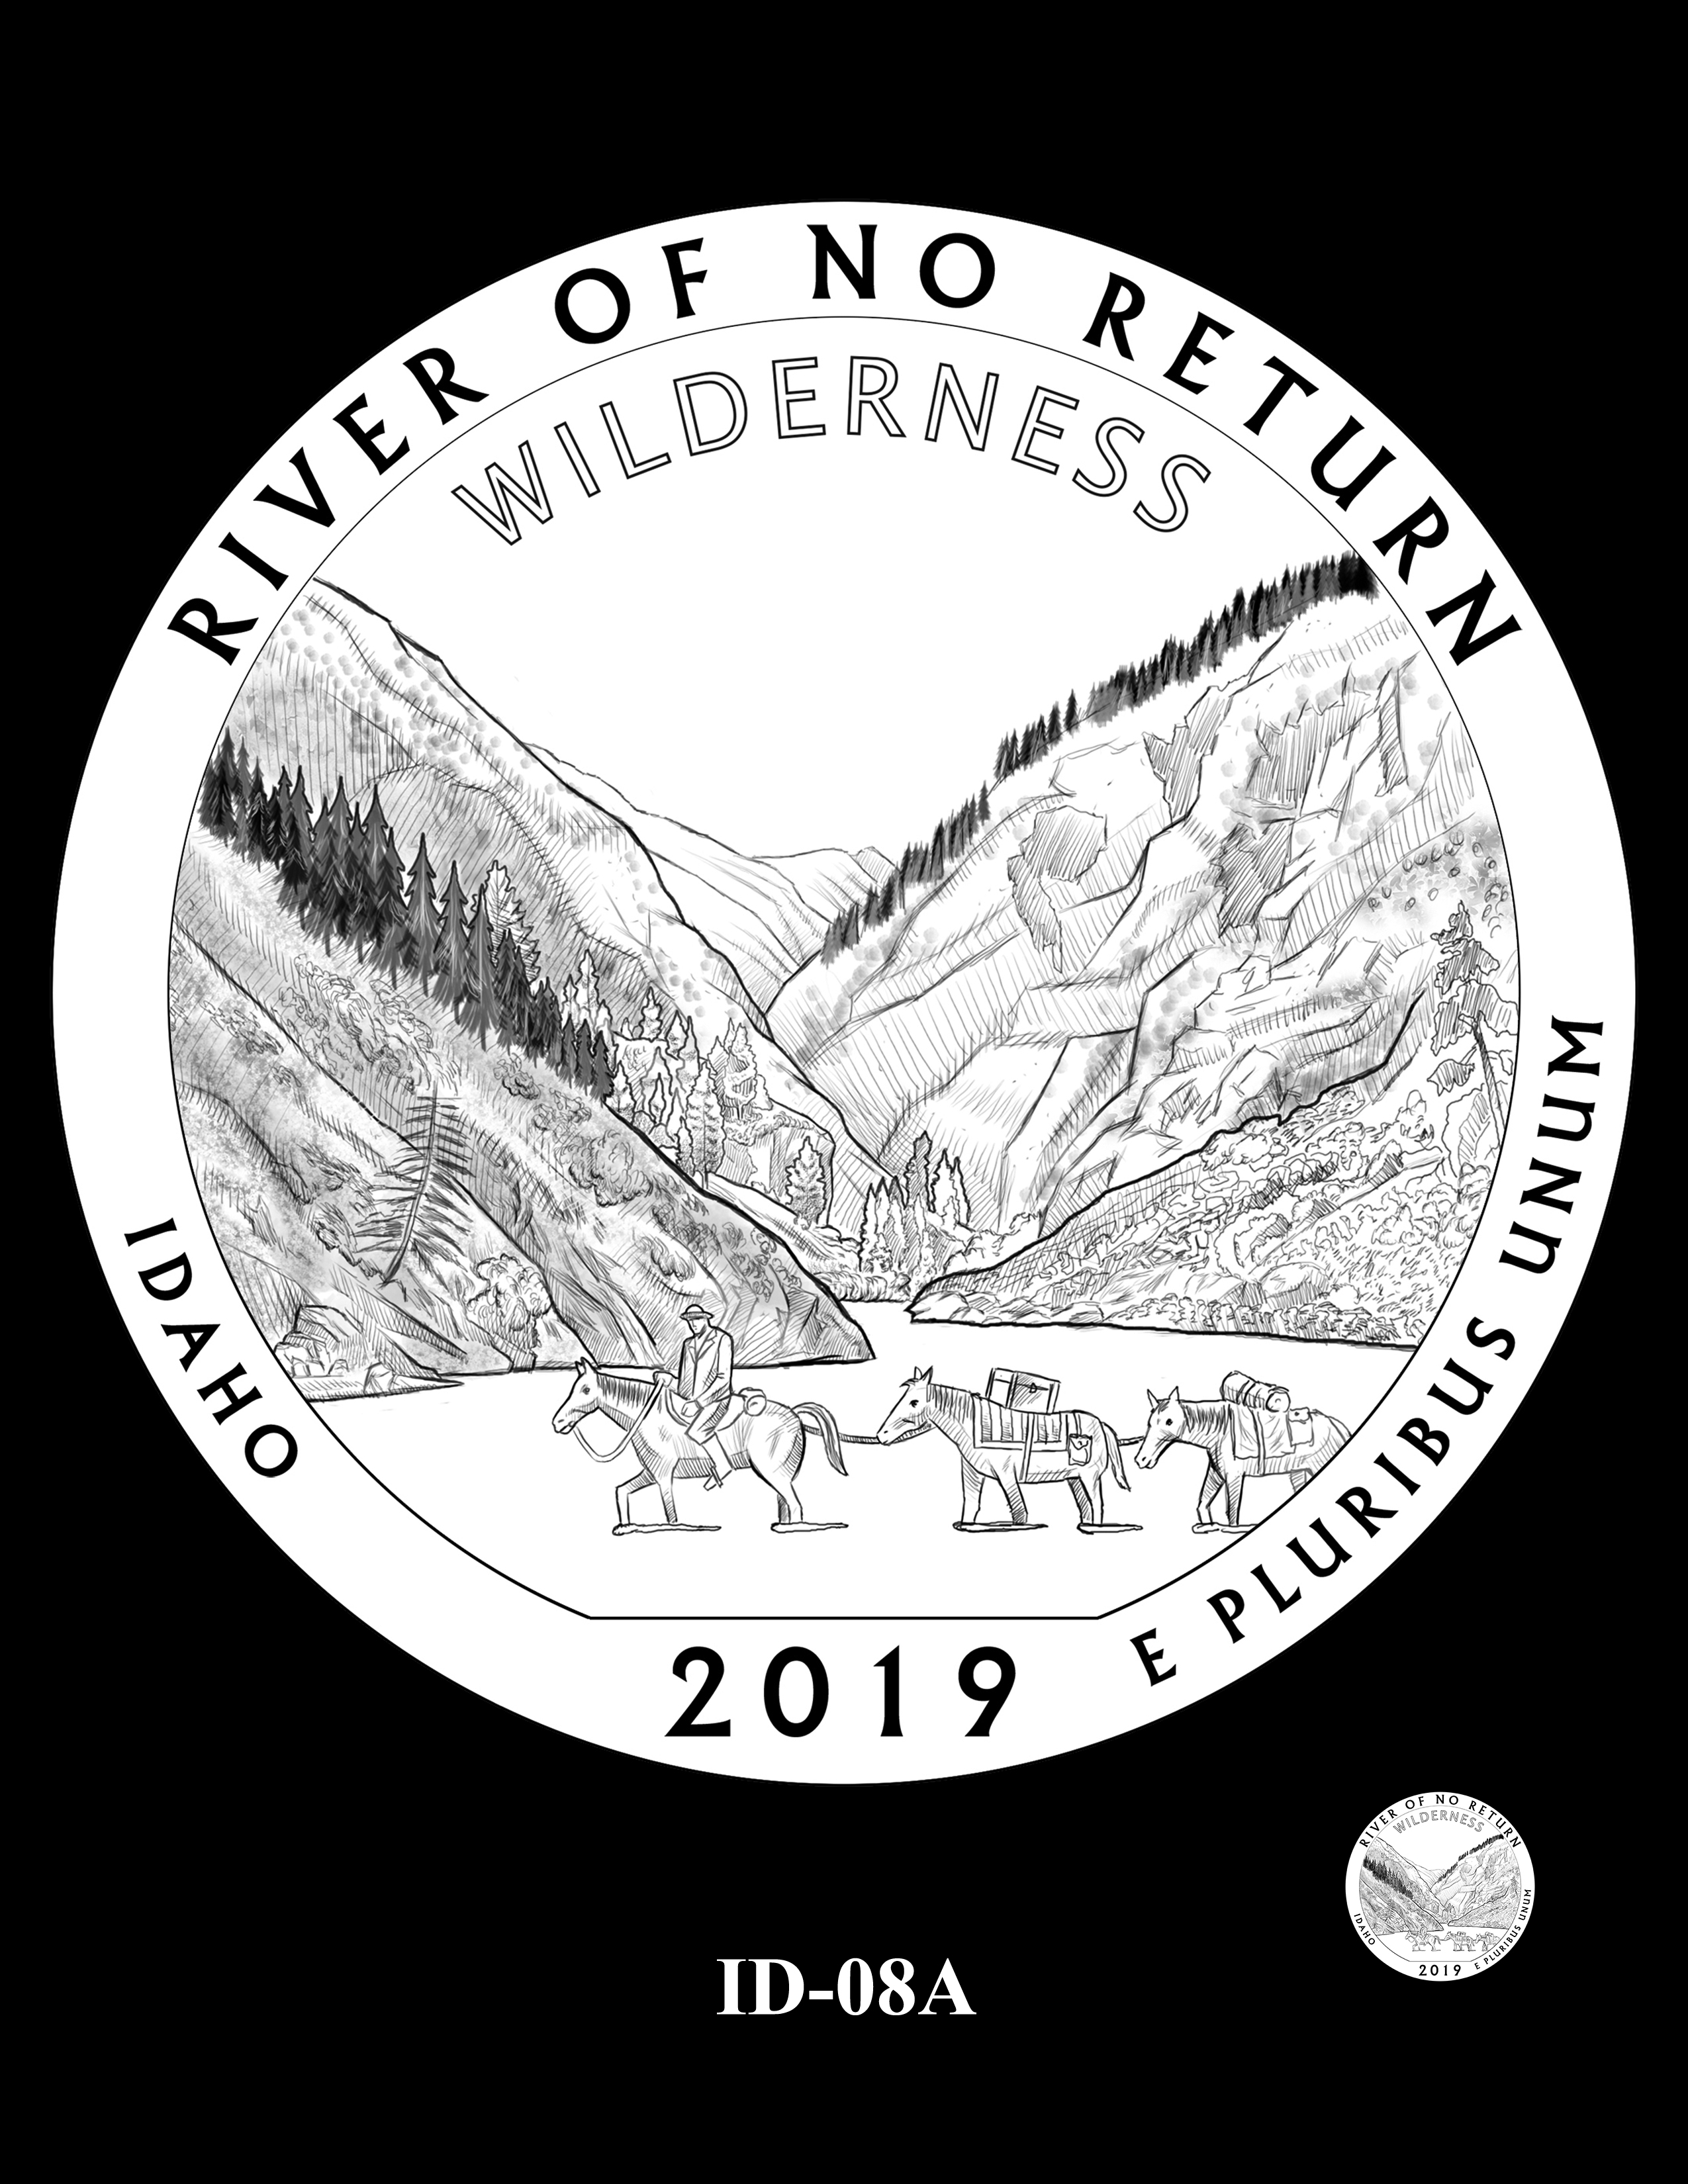 ID-08A -- 2019 America the Beautiful Quarters® Program